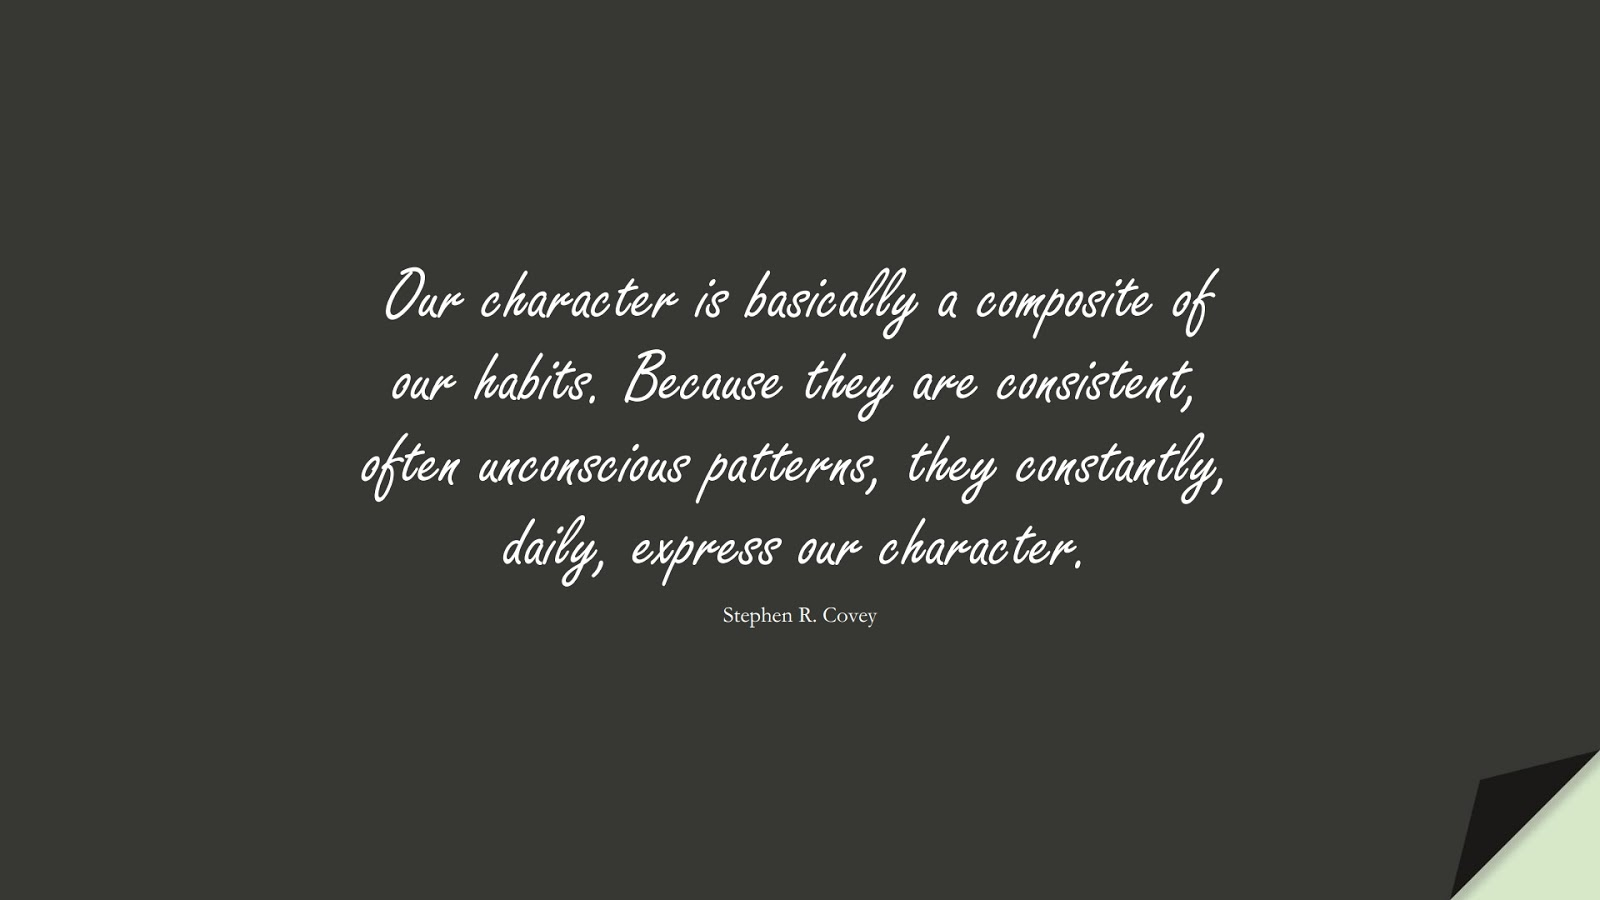 Our character is basically a composite of our habits. Because they are consistent, often unconscious patterns, they constantly, daily, express our character. (Stephen R. Covey);  #CharacterQuotes